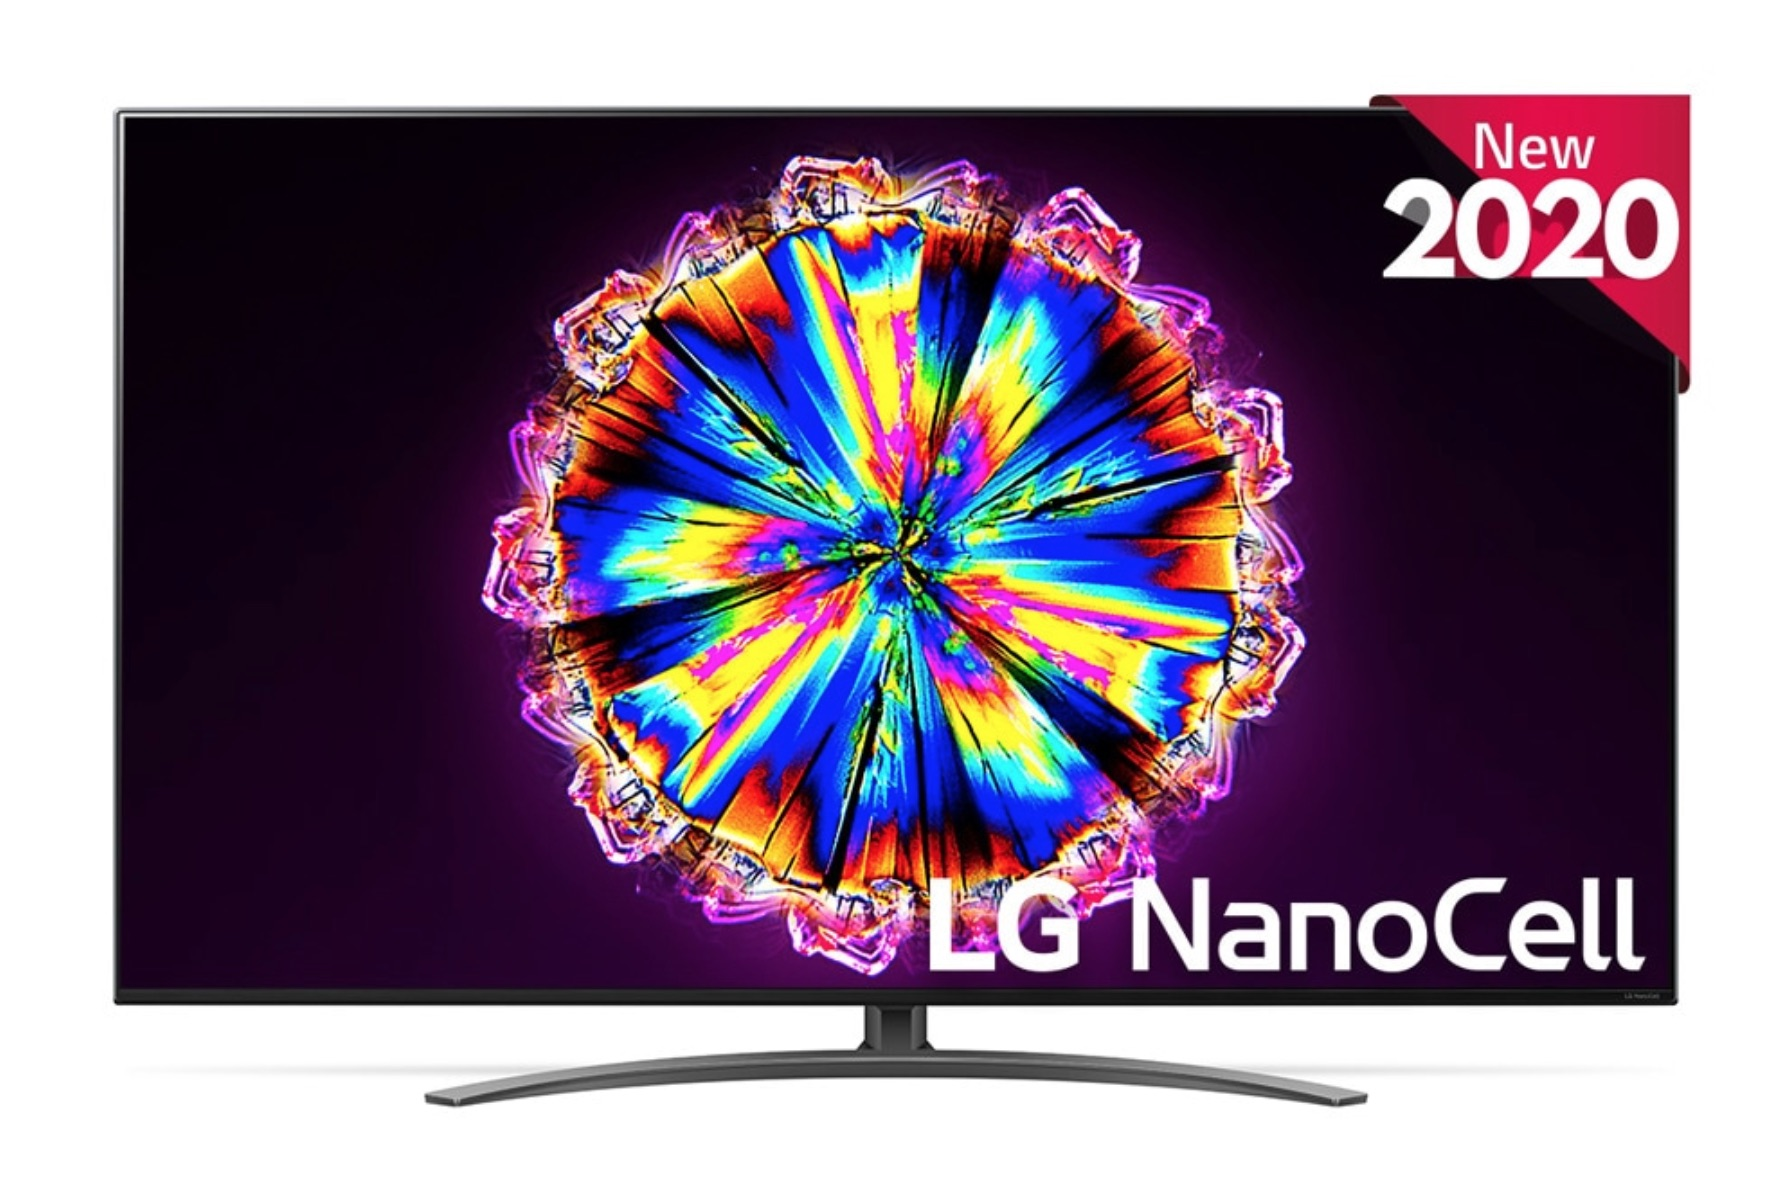 "TV LED 138,8 cm (55"") LG 55NANO916NA NanoCell 4K con Inteligencia Artificial, HDR Dolby Vision IQ y Smart TV"